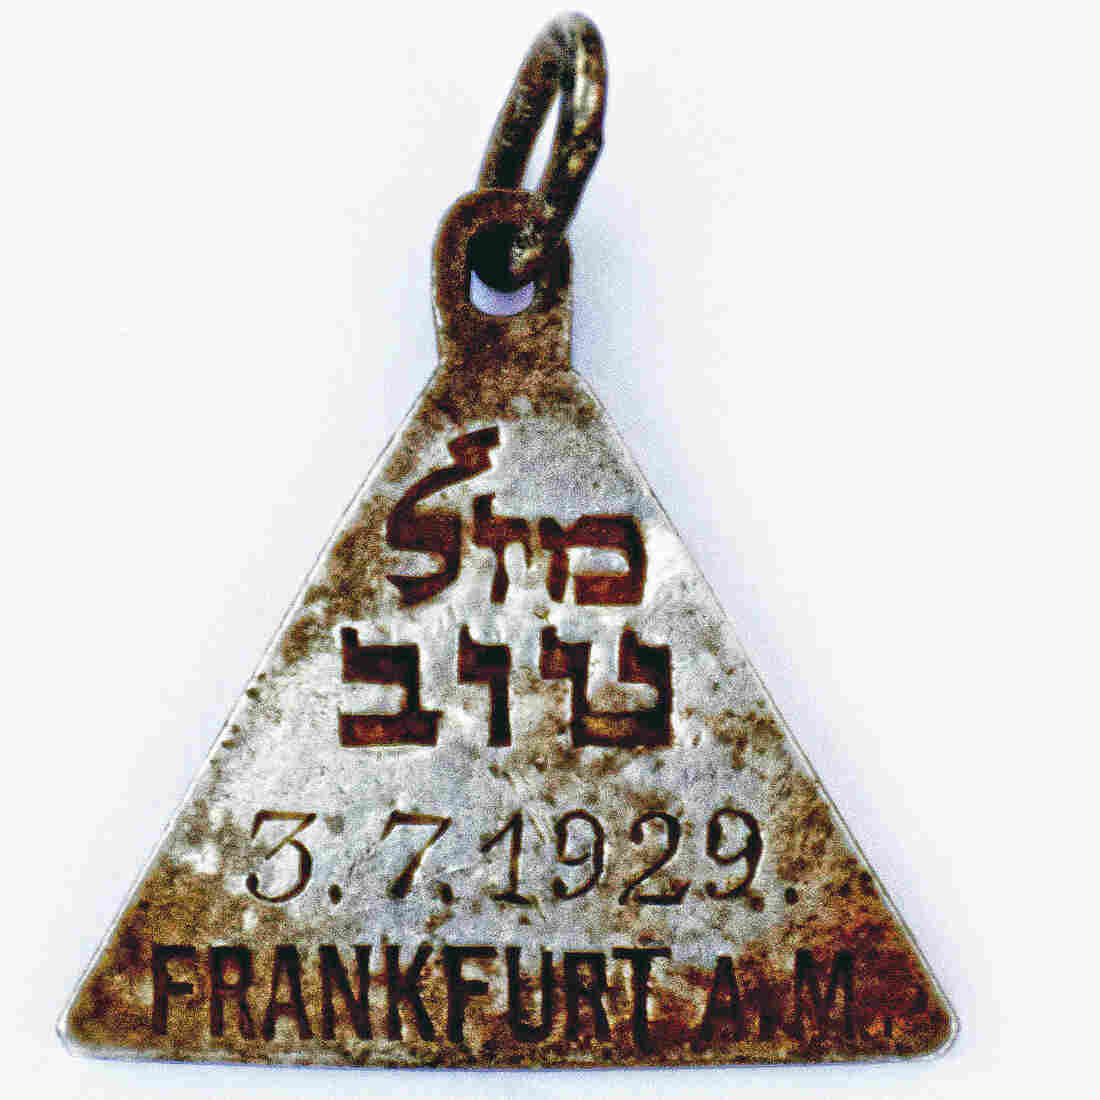 Israel says Nazi camp excavations unearth link to Anne Frank